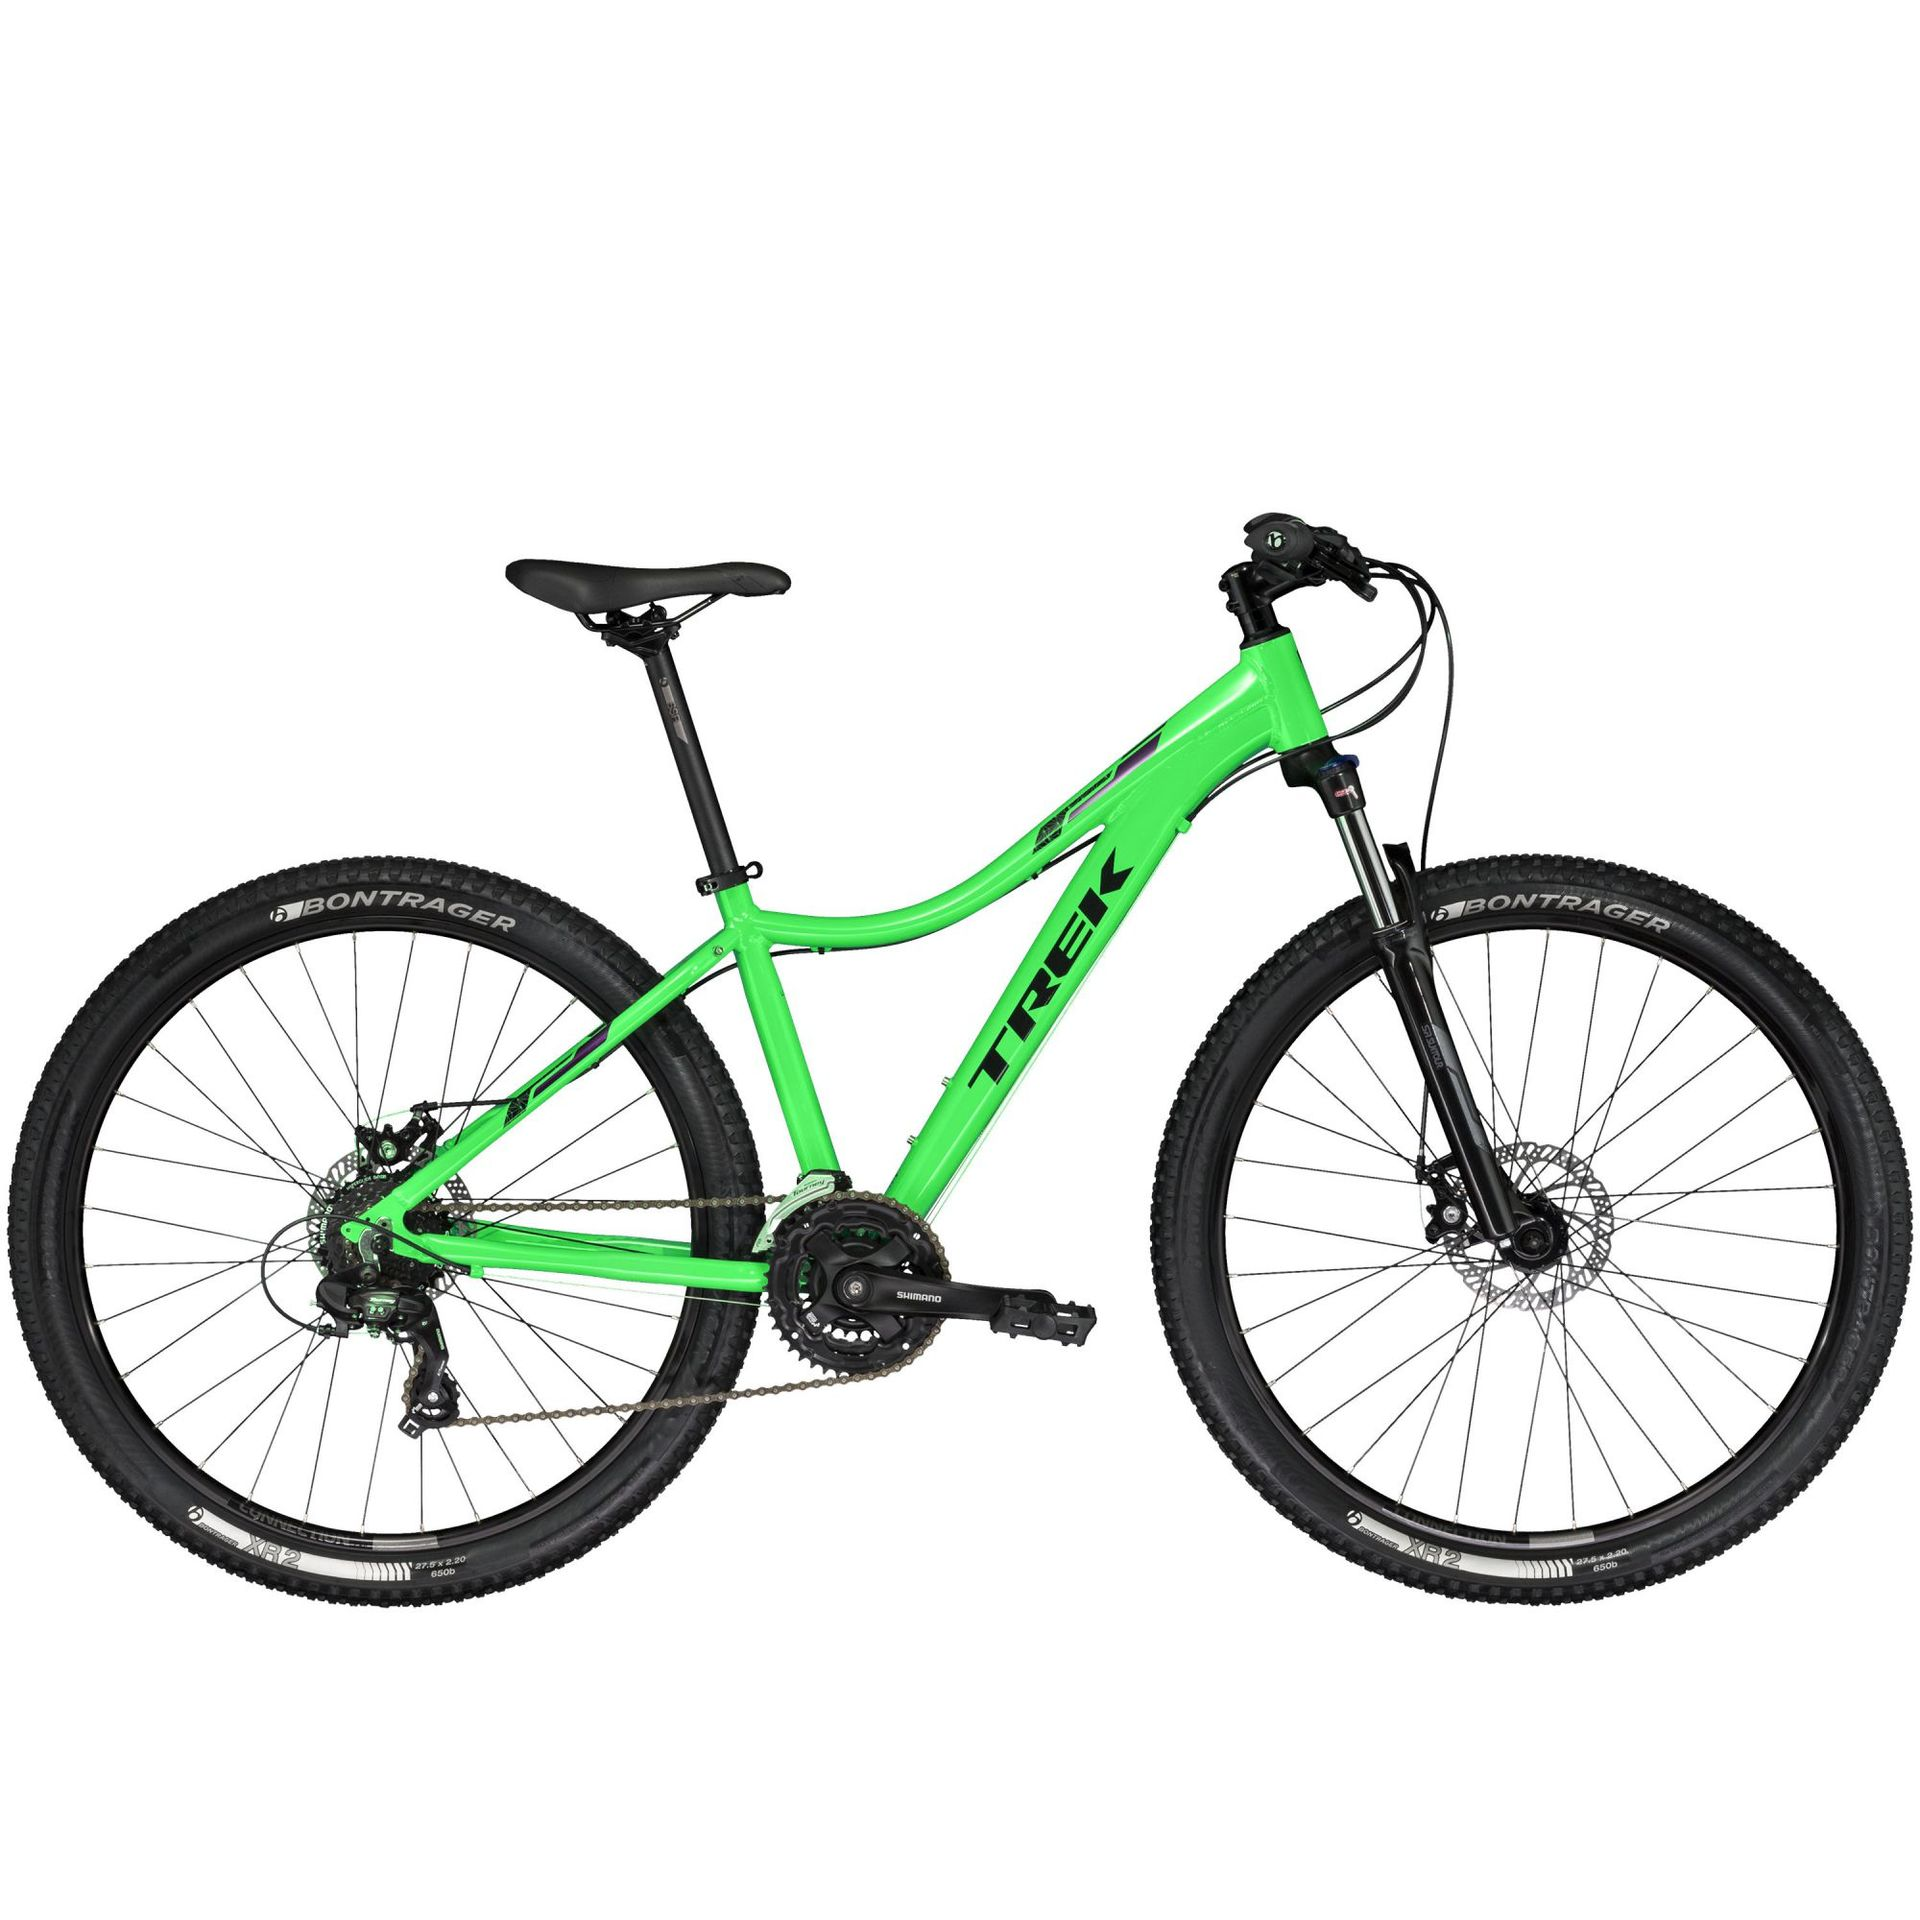 ROWER TREK SKYE S KOŁO 27.5 GREEN LIGHT 1